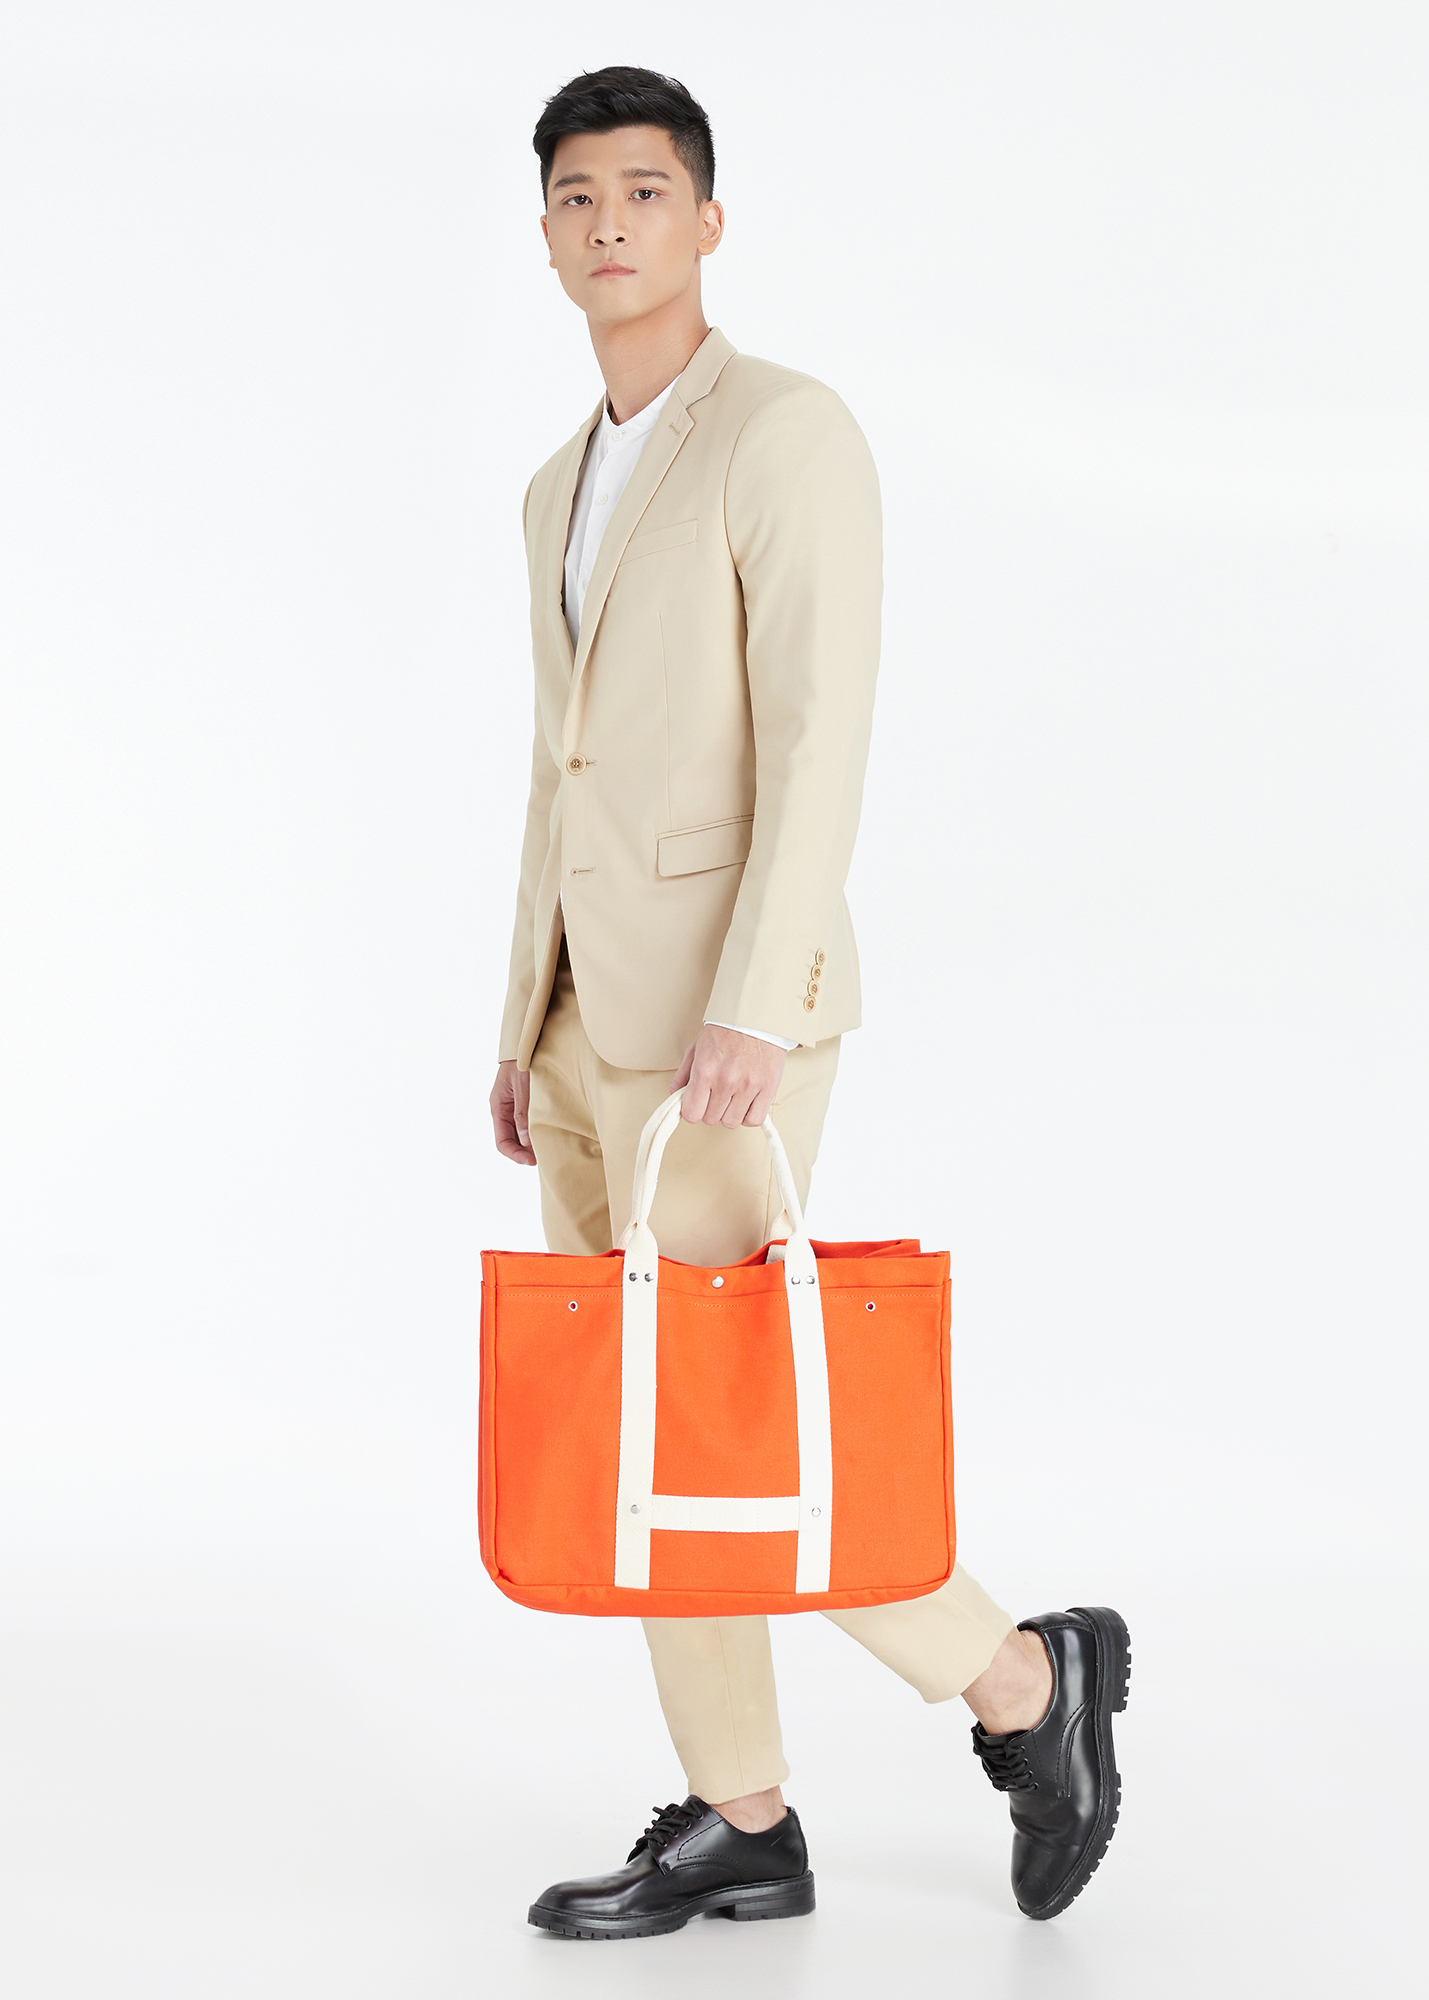 Supermarket Bag : Orange (limited)